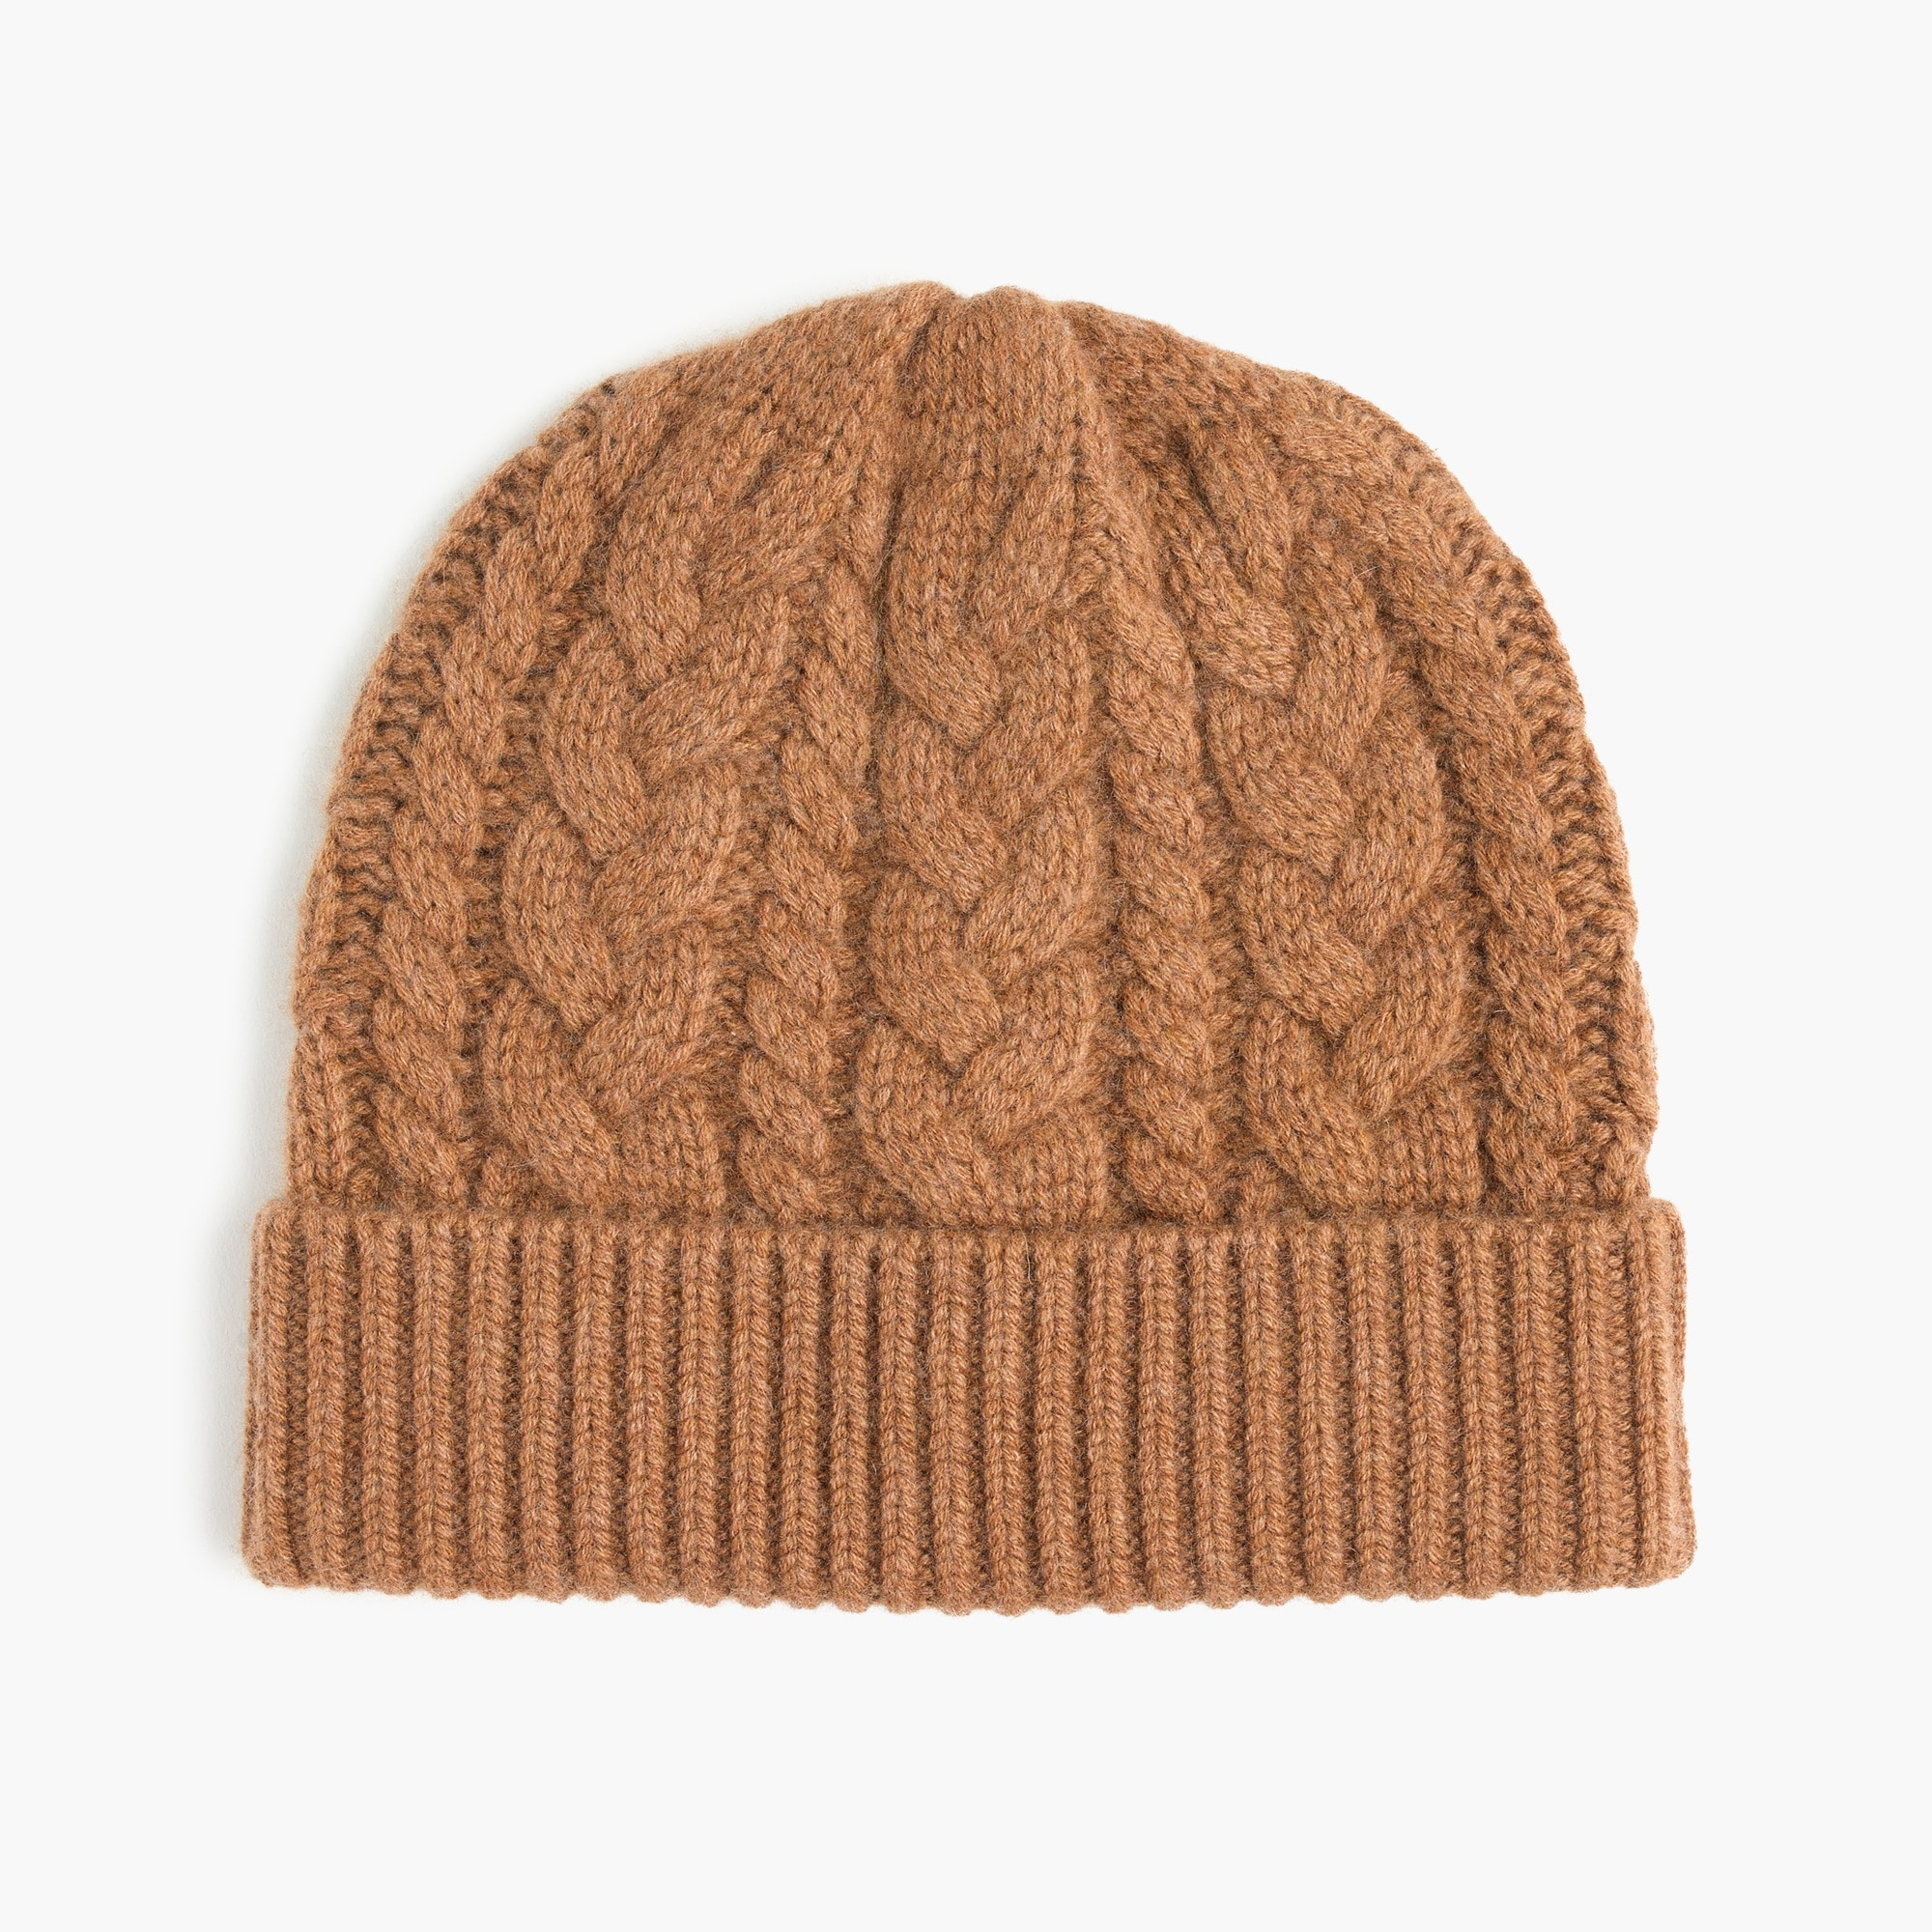 Image 1 for Cashmere cable beanie